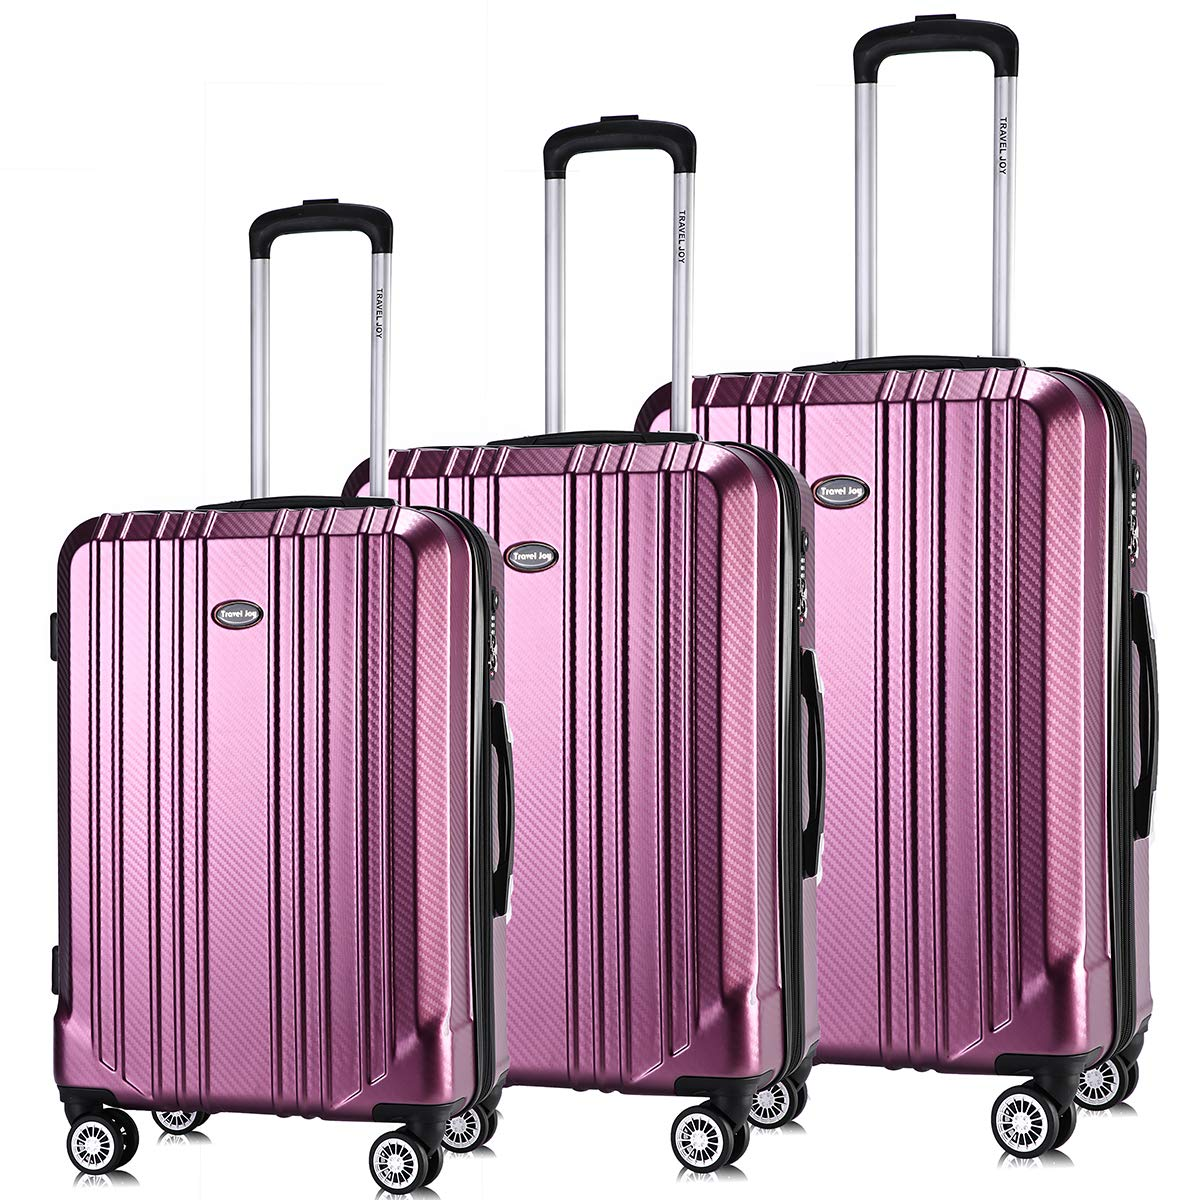 Luggage Set Expandable Premium Carbon Fiber Suitcase 3 Piece Set TSA Lightweight Spinner Carry On Luggage VIOLET